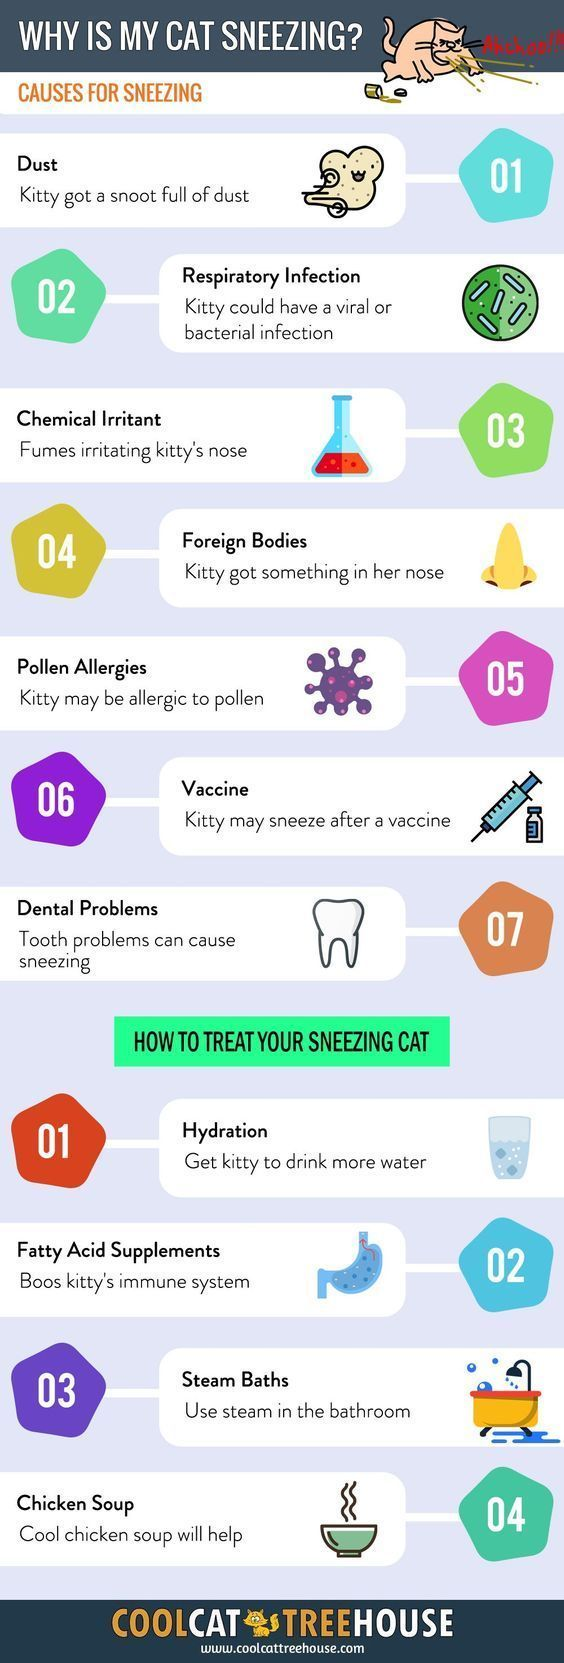 Why Your Cat Keeps Sneezing But Seems Fine